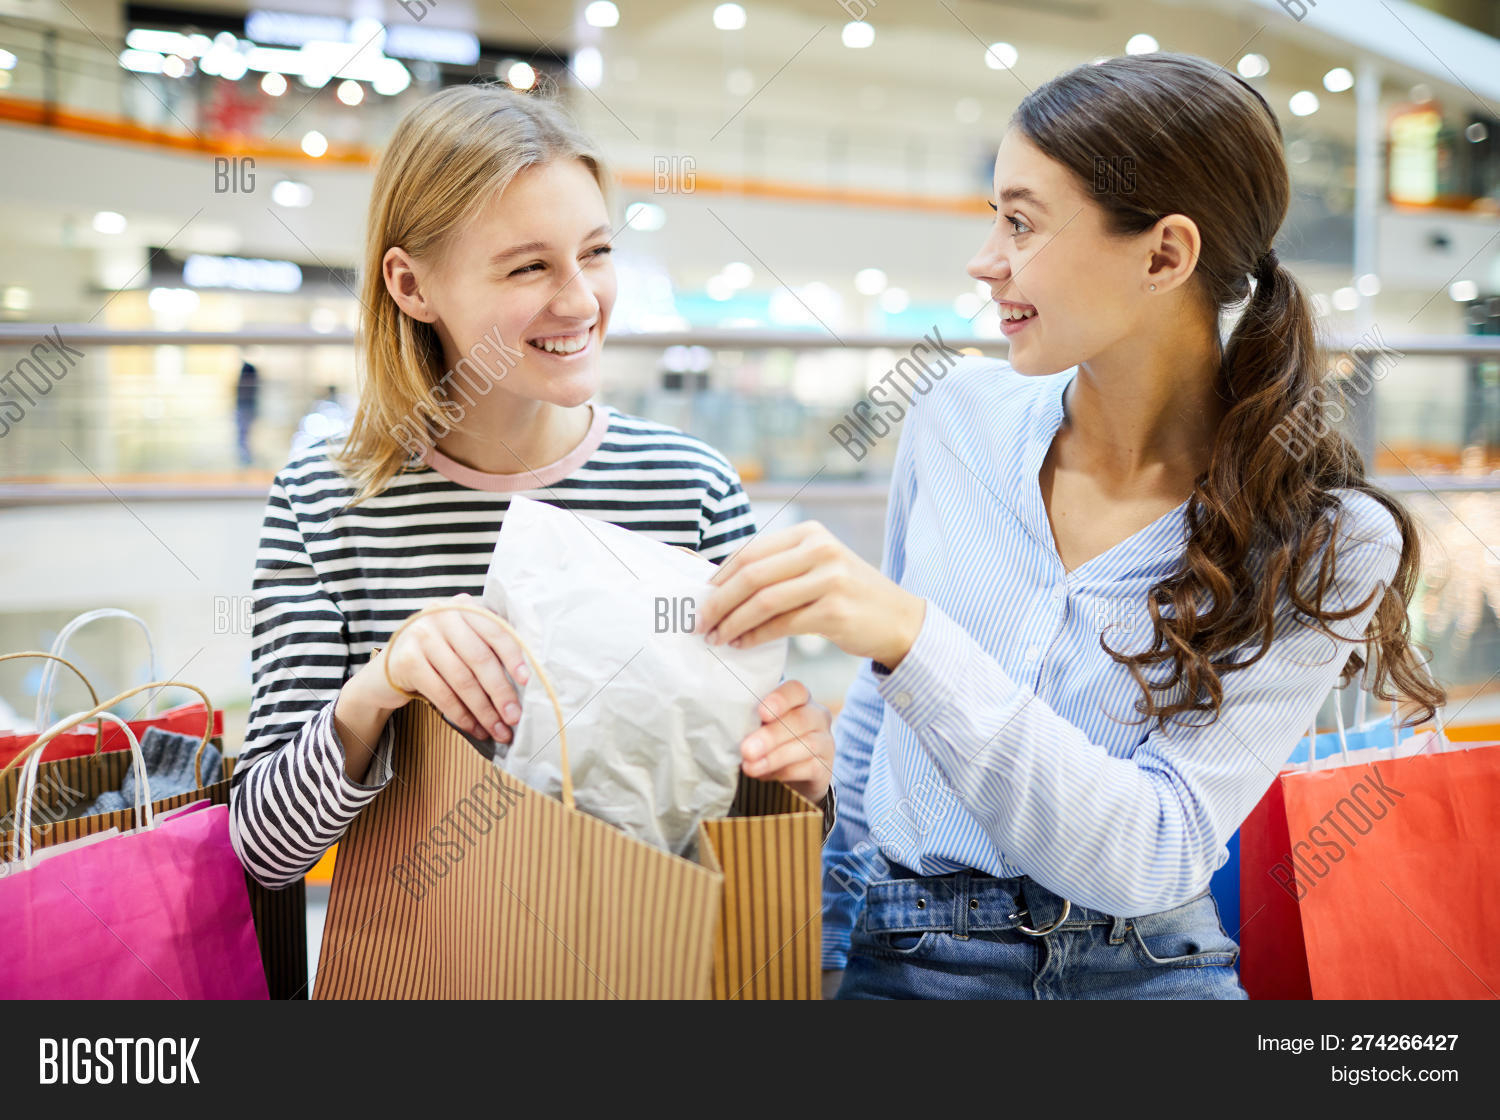 Two Girls Taking Packed Purchase Out Of Paperbag While Discussing